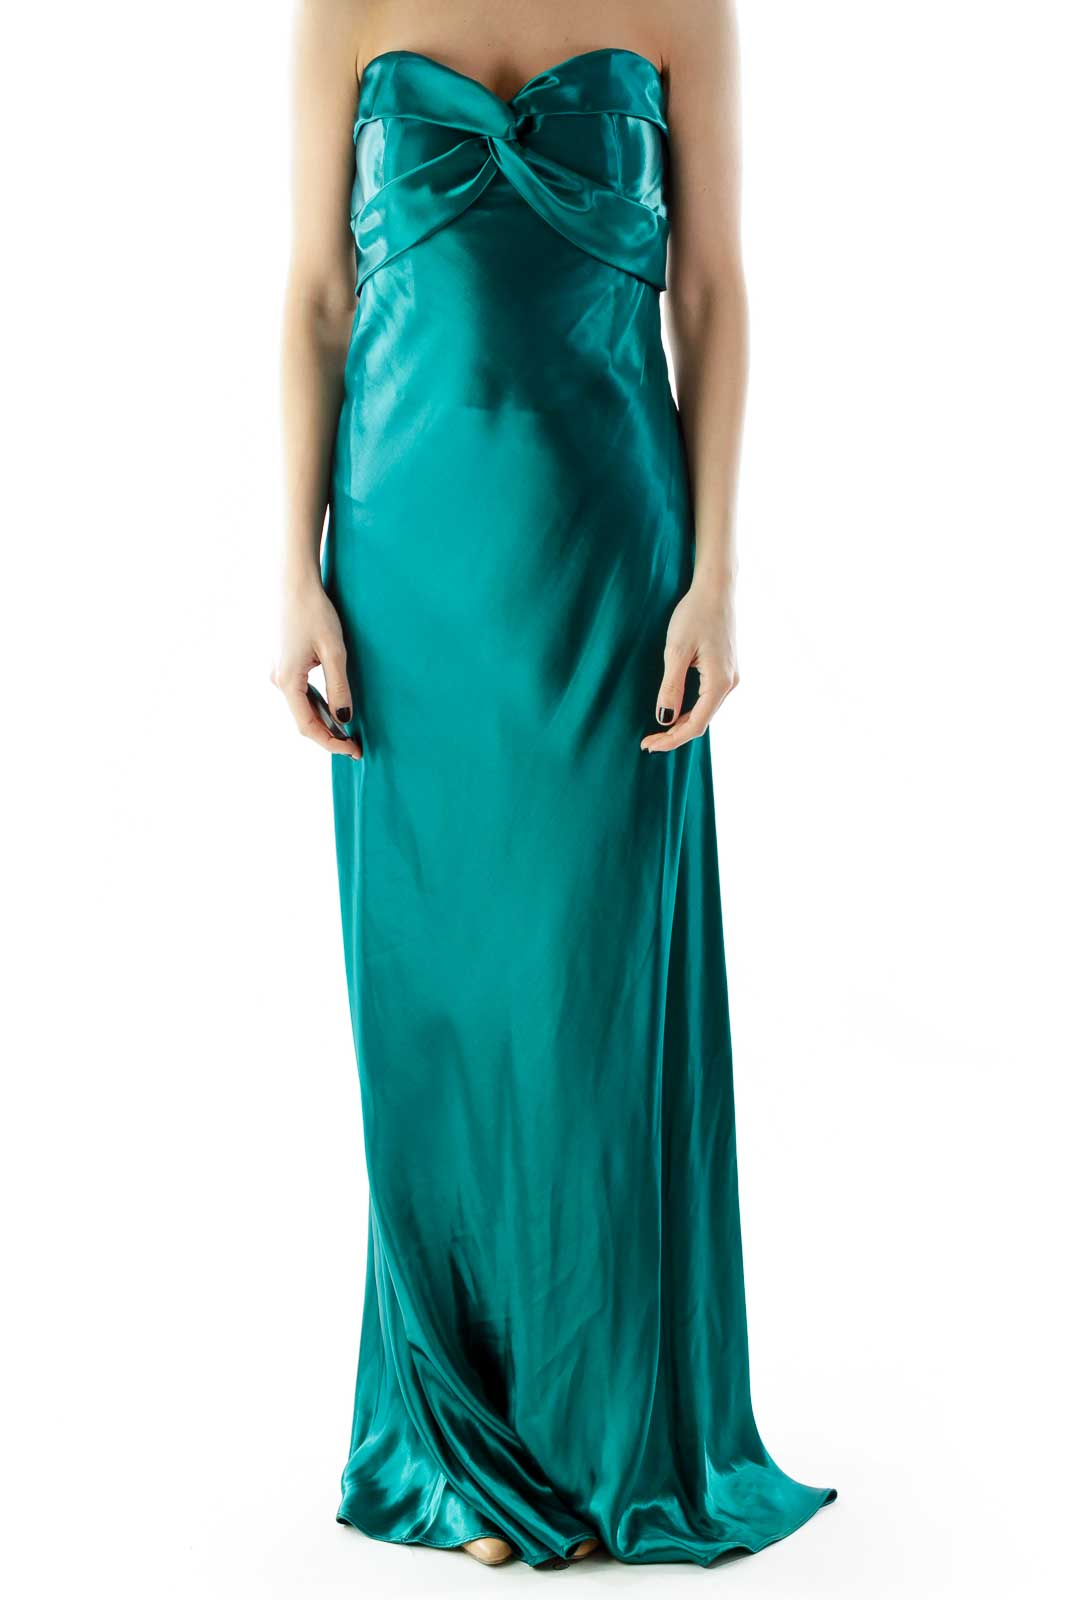 Emerald Strapless Shimmer Evening Dress